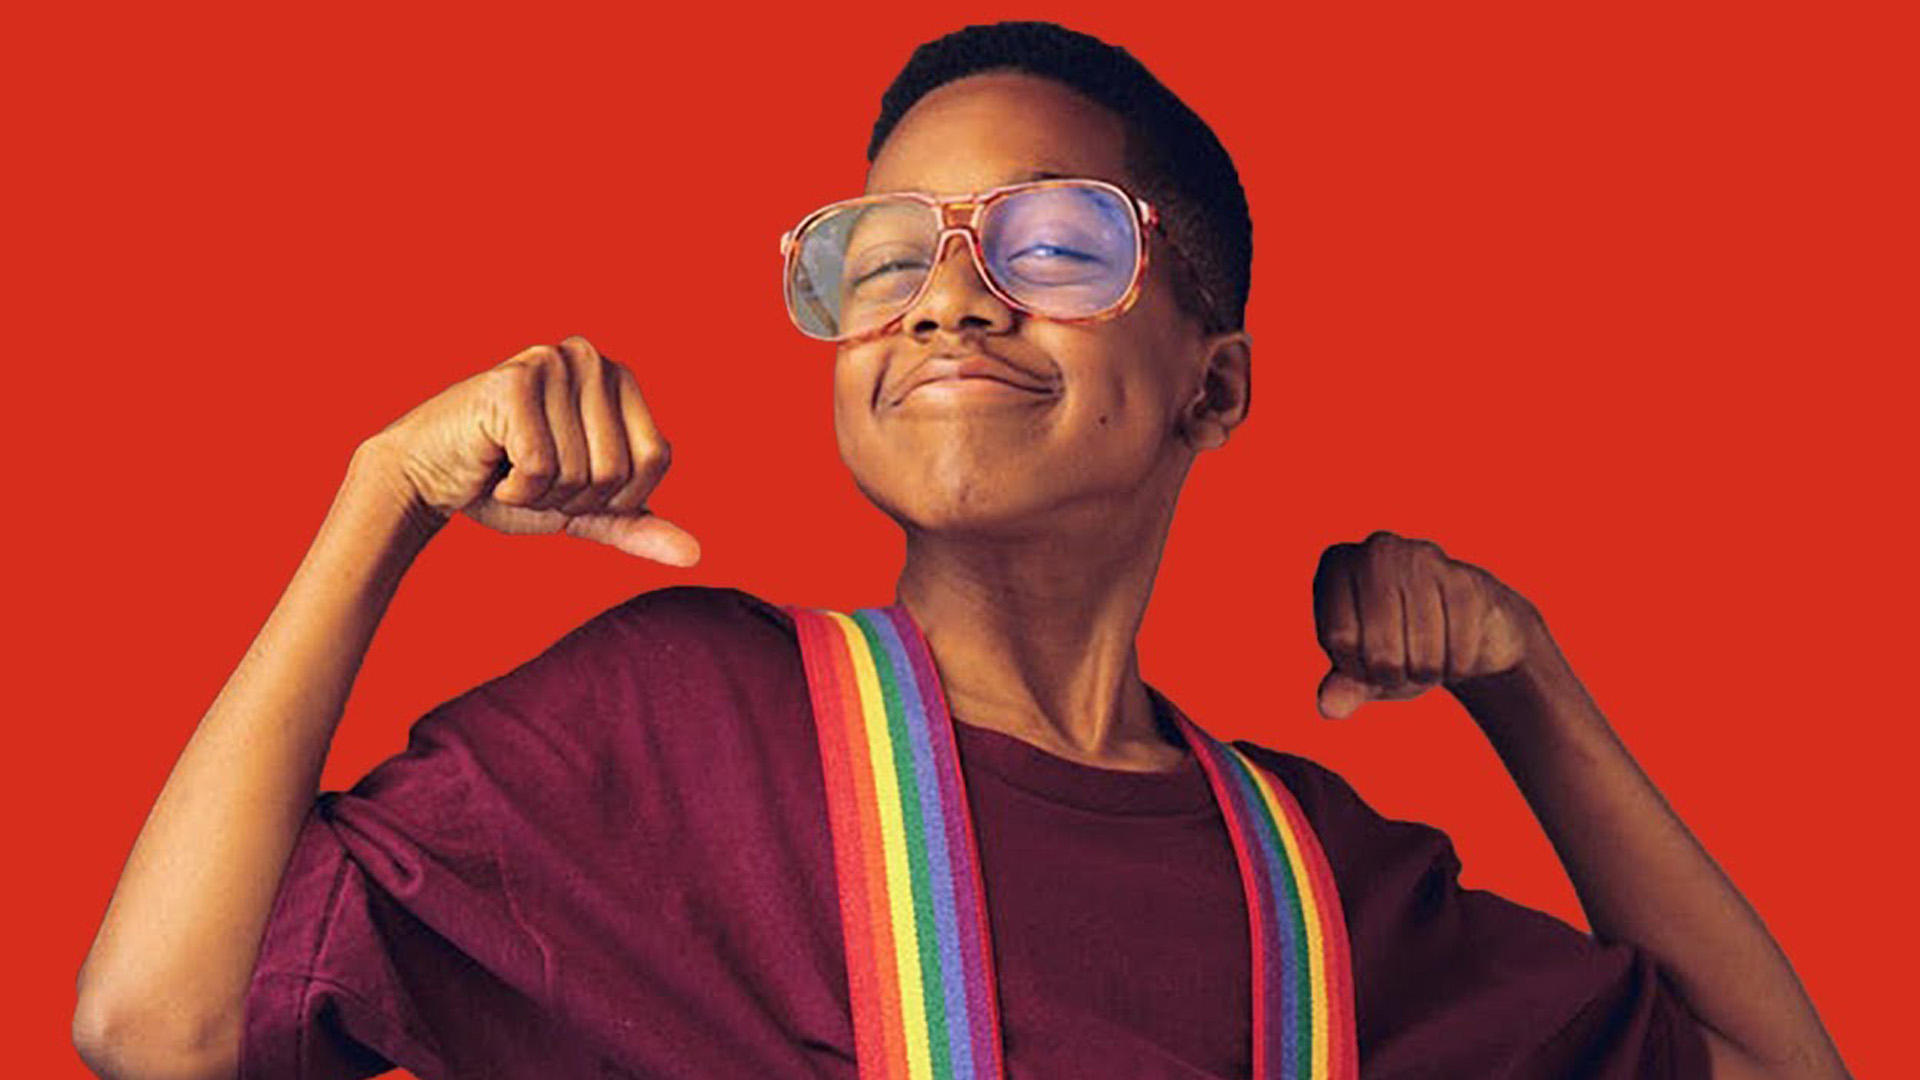 Steve Urkel is Bad to the Bone in Fun Video Remix from MelodySheep 1920x1080